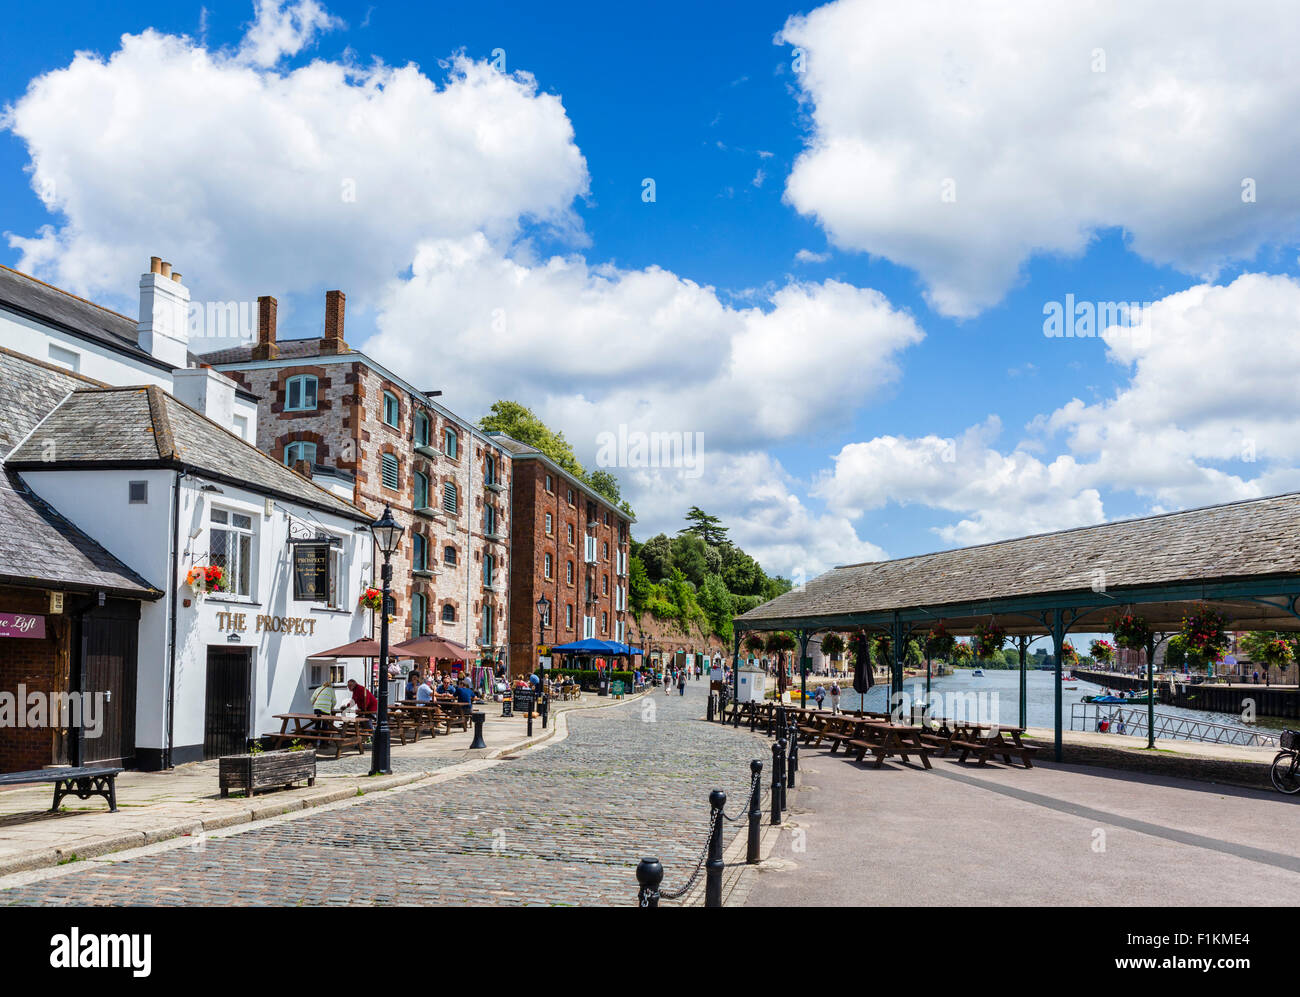 The Quay with the Prospect pub to the left, Exeter, Devon, England, UK - Stock Image